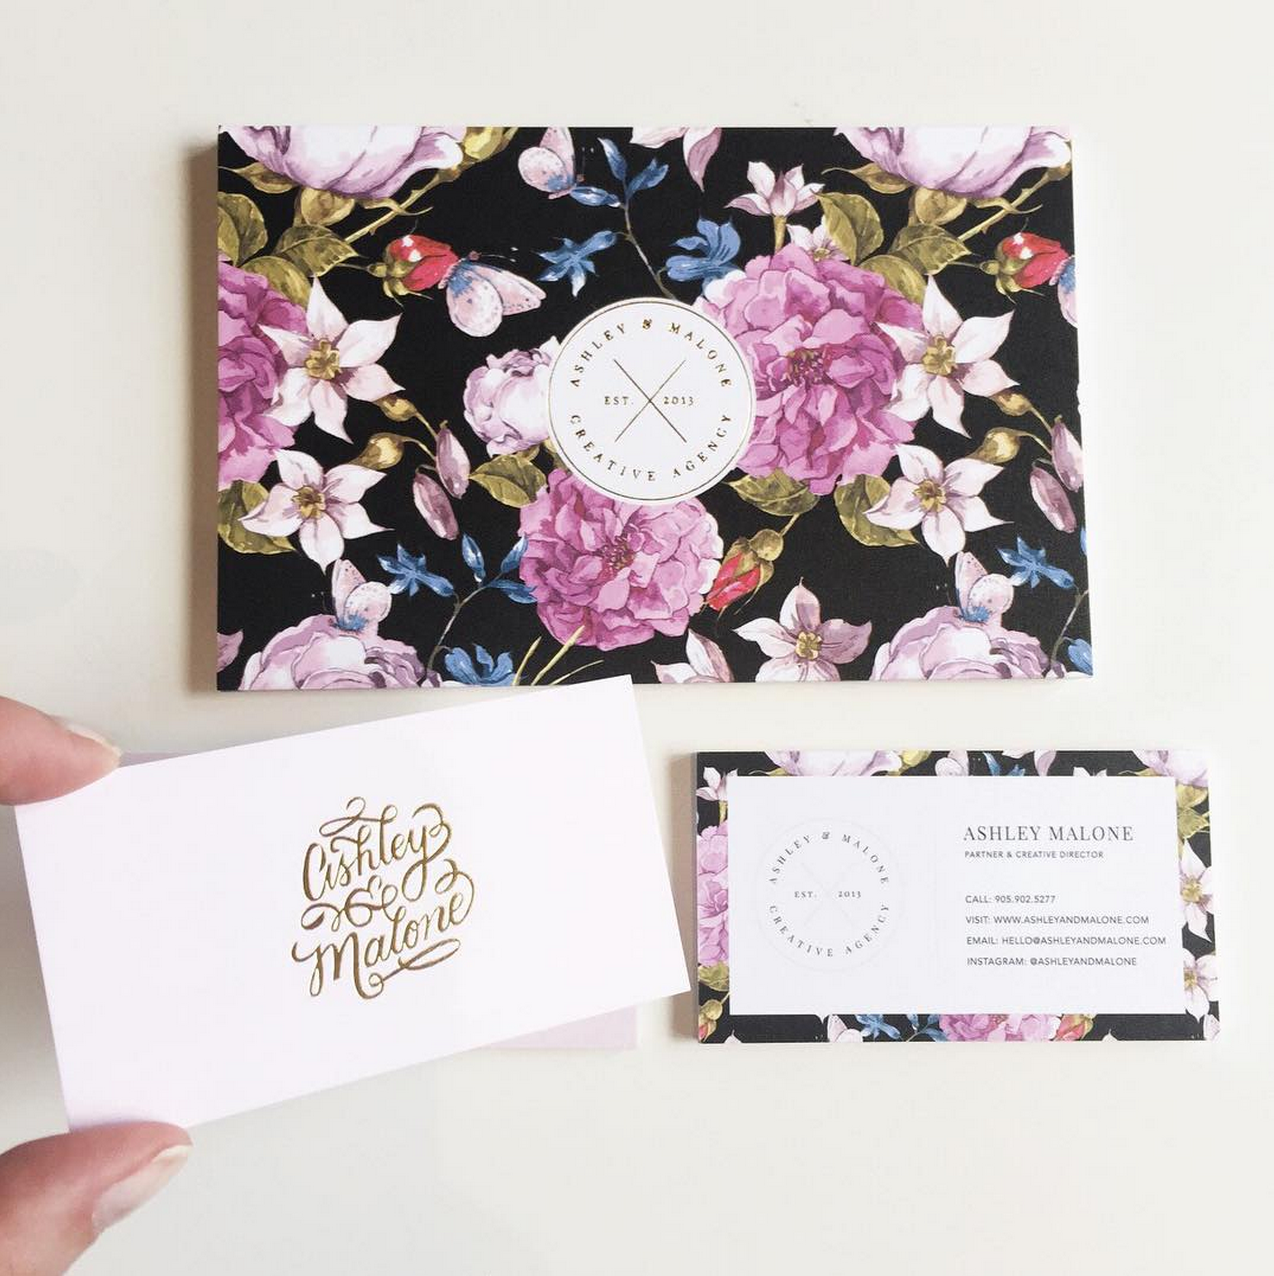 Business Card Design of the Month - October 2015